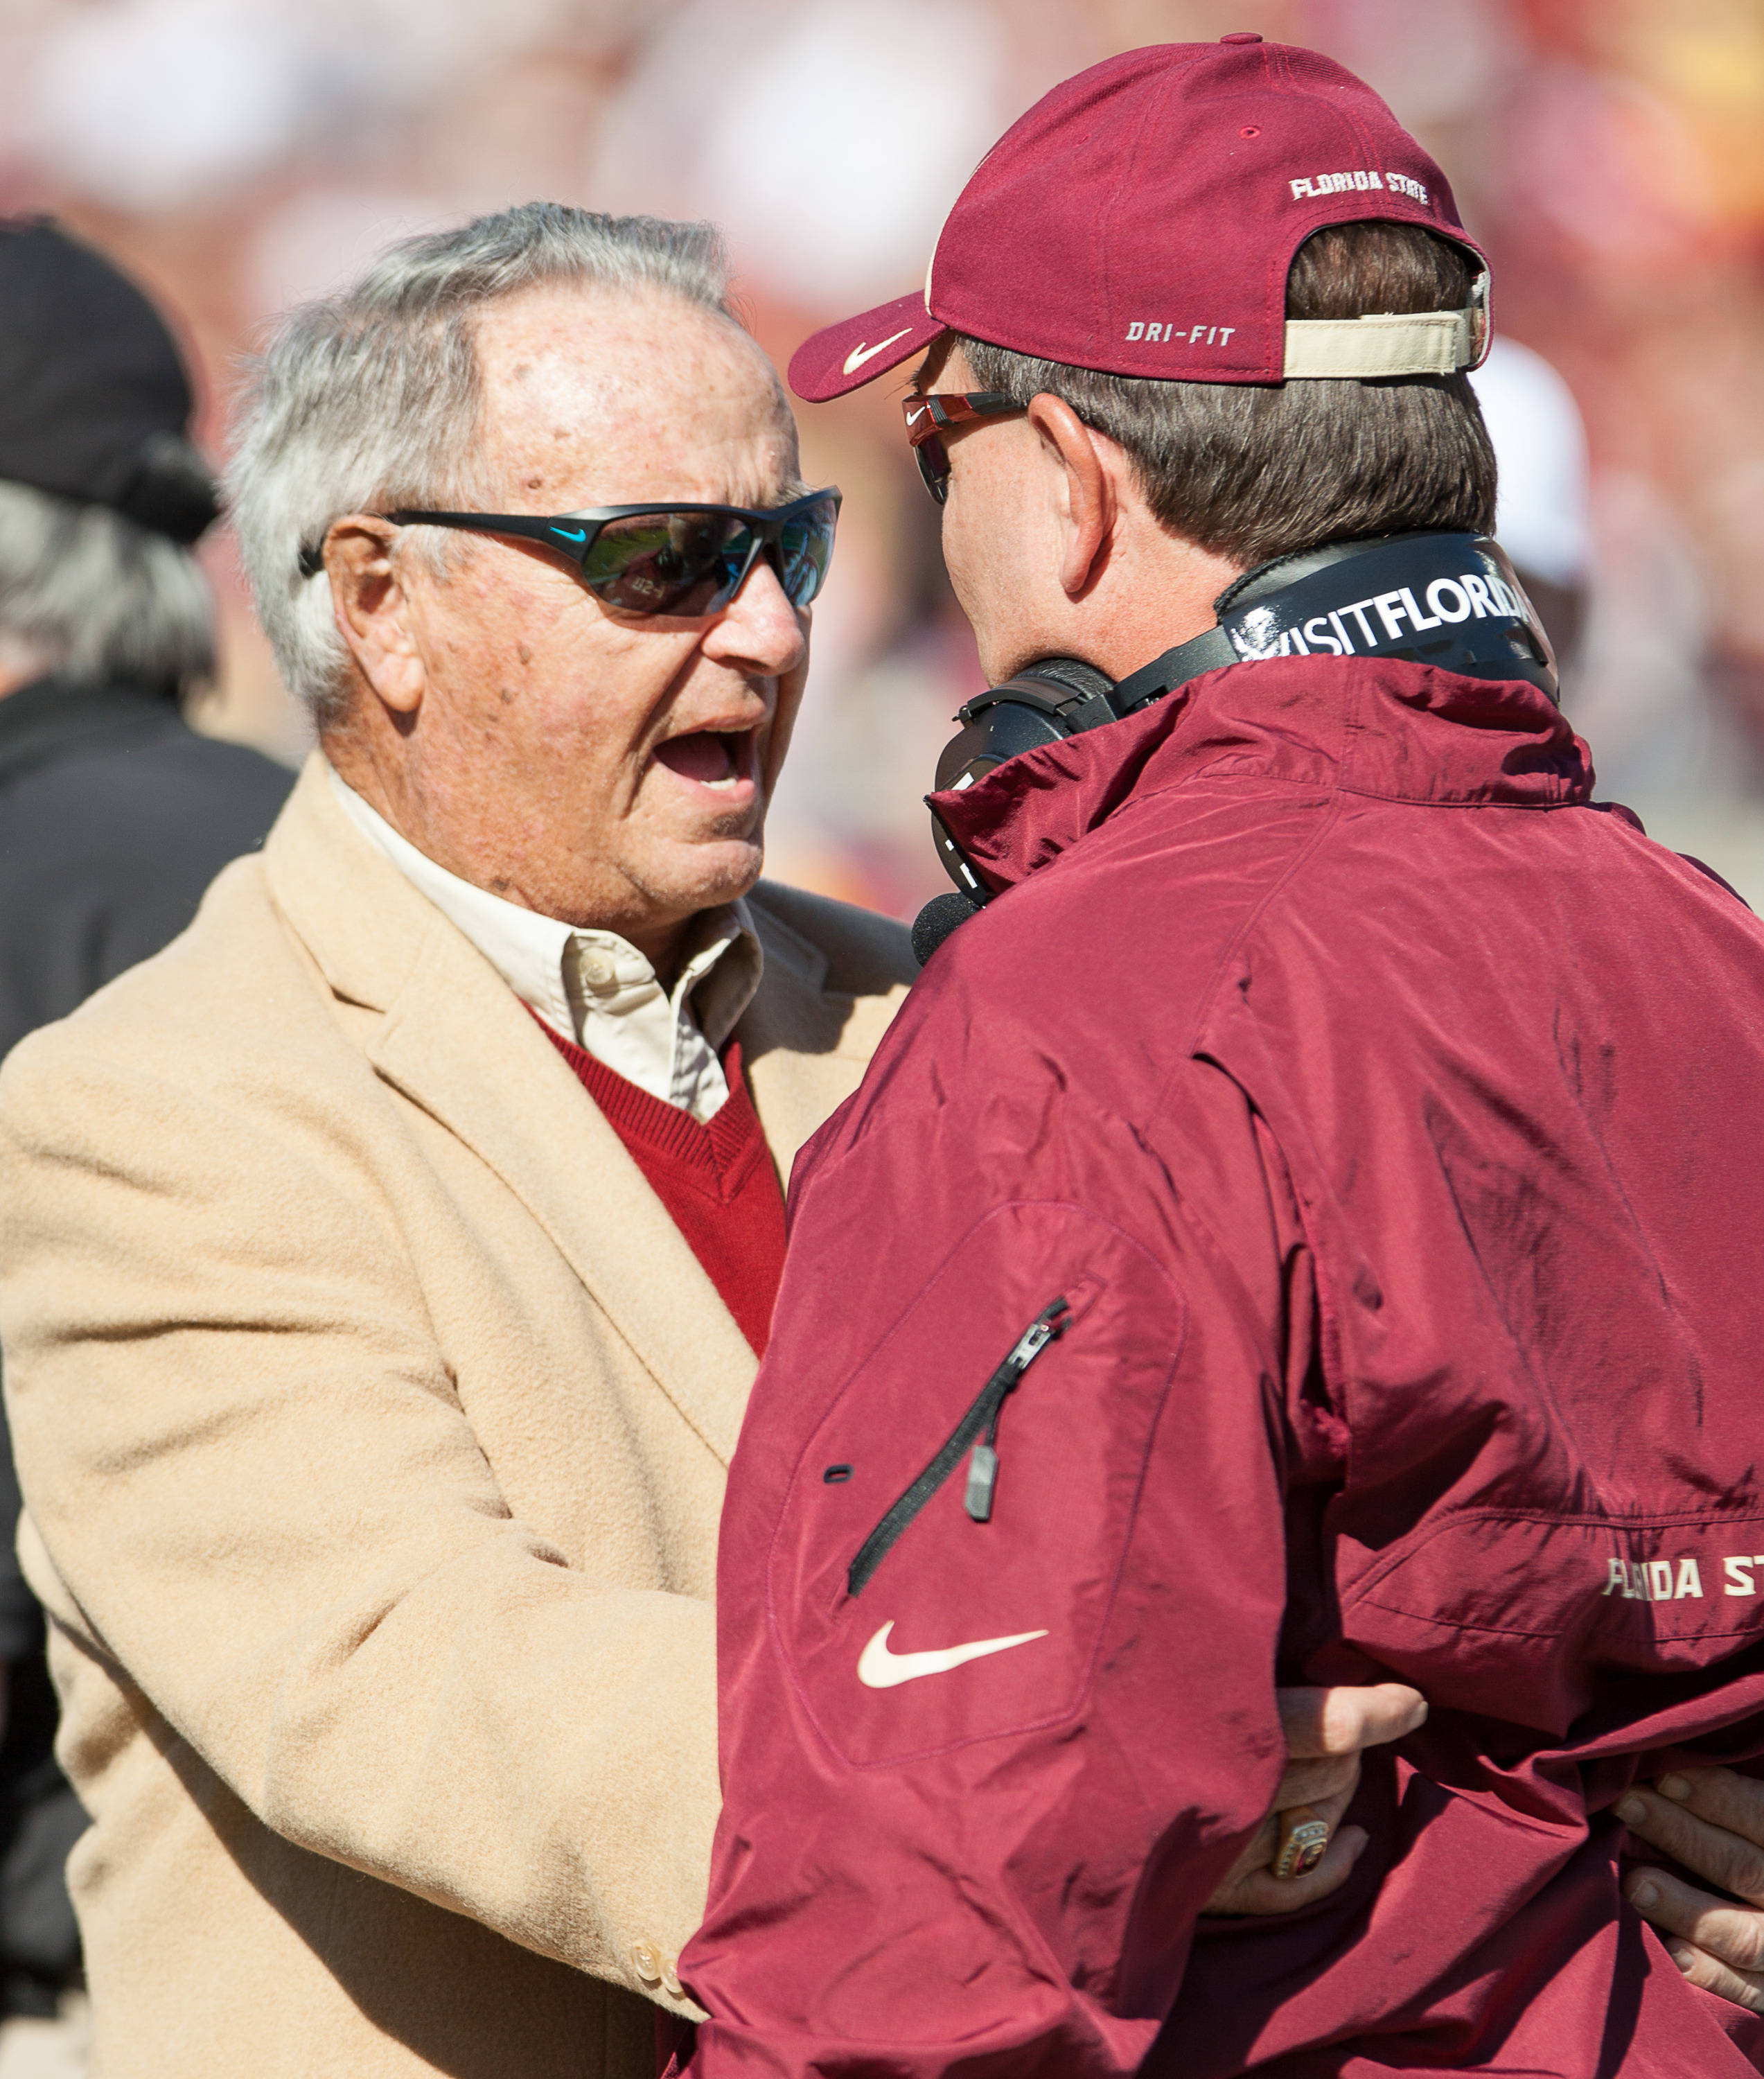 Bobby Bowden takes the field before FSU Football's 49-17 win over NC State on Saturday, October 26, 2013 in Tallahassee, Fla. Photo by Michael Schwarz.